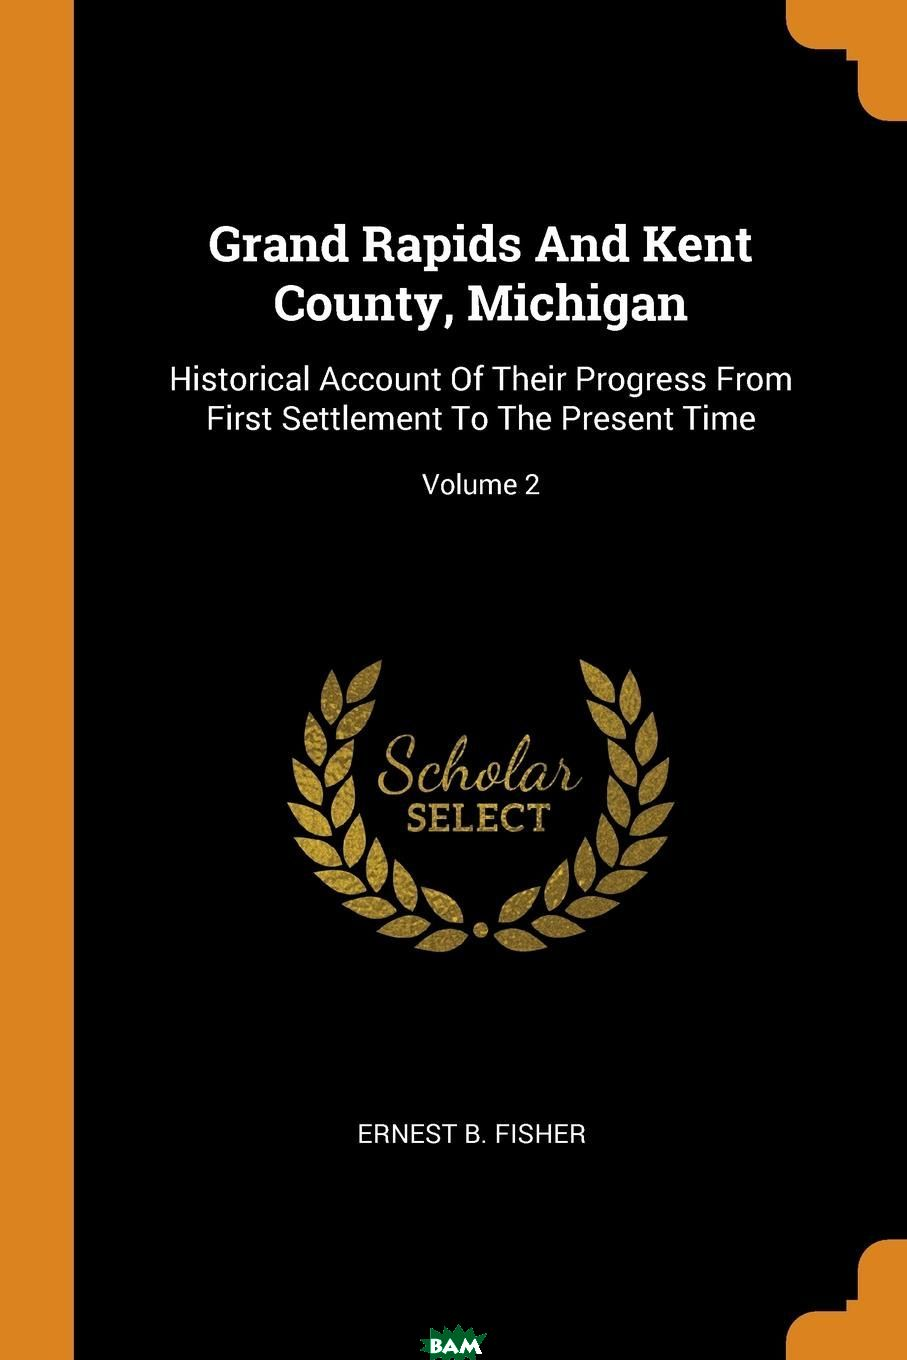 Купить Grand Rapids And Kent County, Michigan. Historical Account Of Their Progress From First Settlement To The Present Time; Volume 2, Ernest B. Fisher, 9780353434455